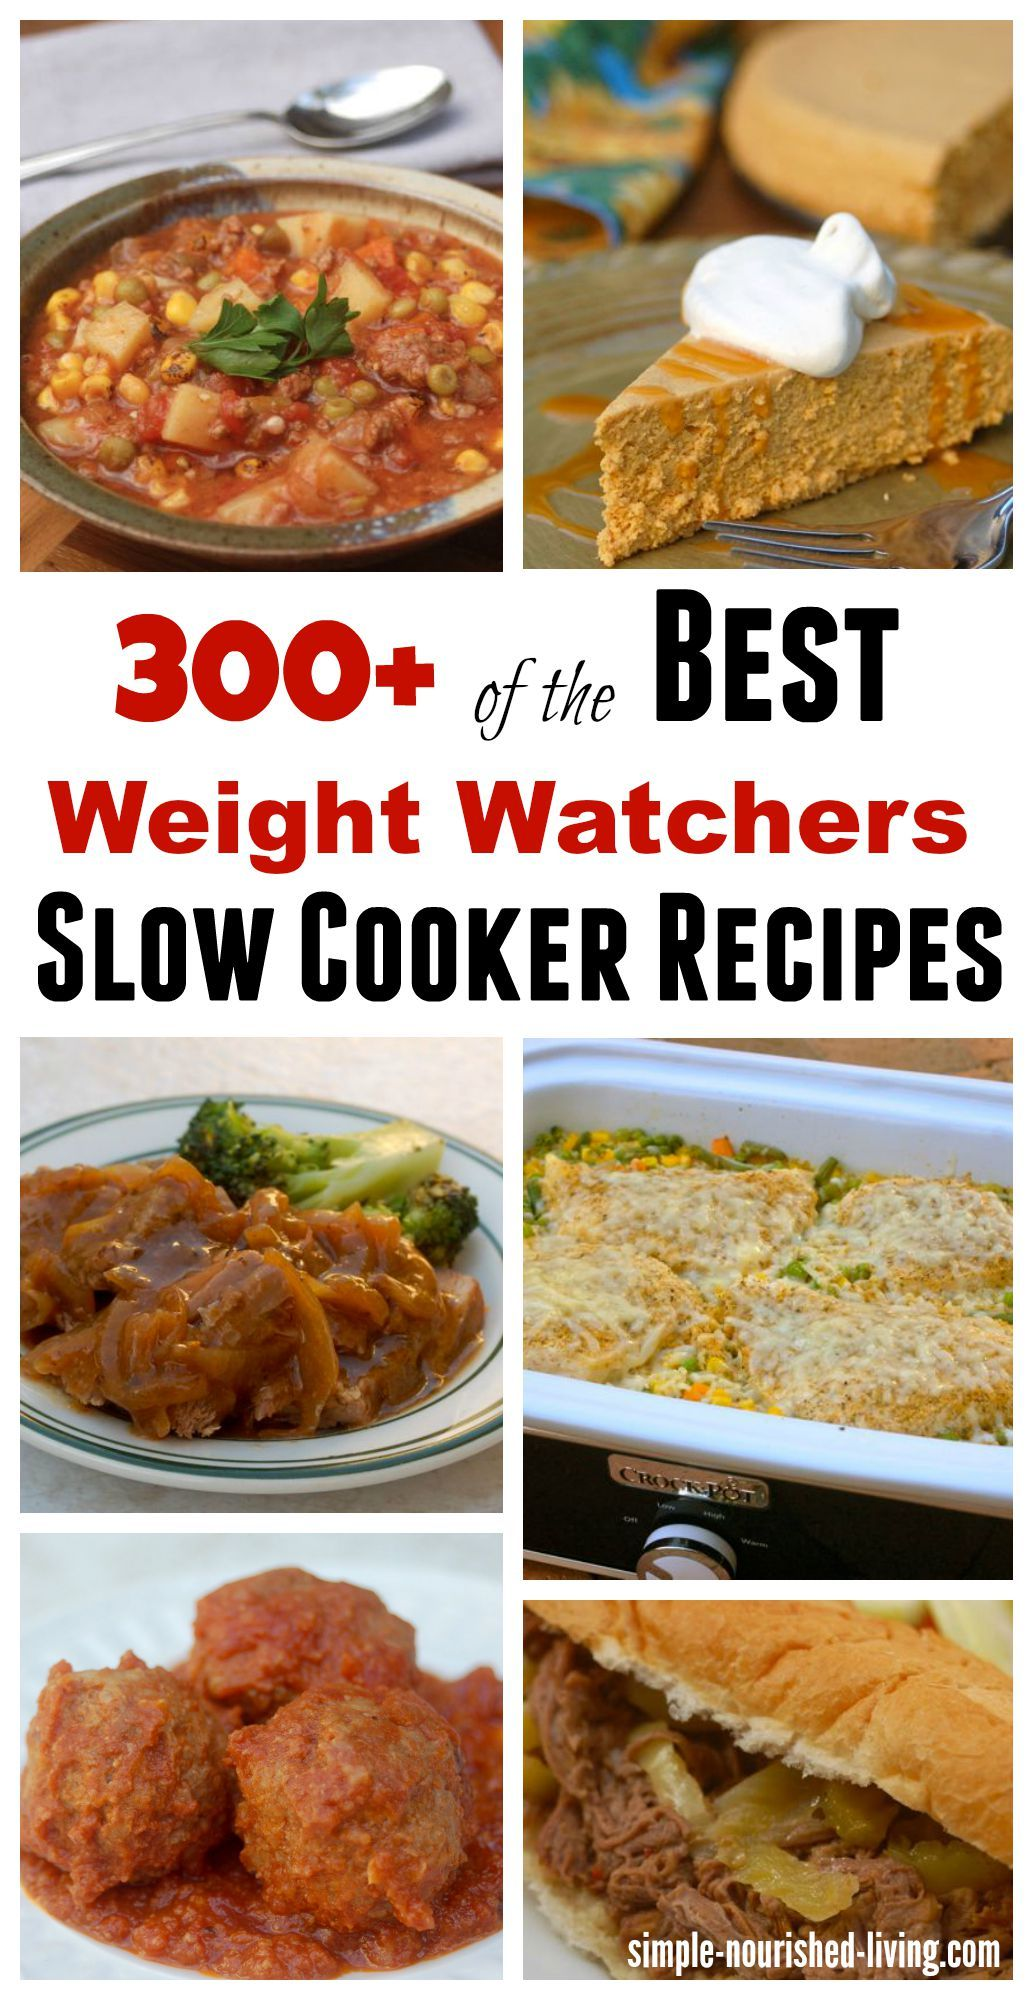 300 of the best weight watchers slow cooker recipes all with 300 of the best weight watchers slow cooker recipes all with calories and points plus forumfinder Image collections